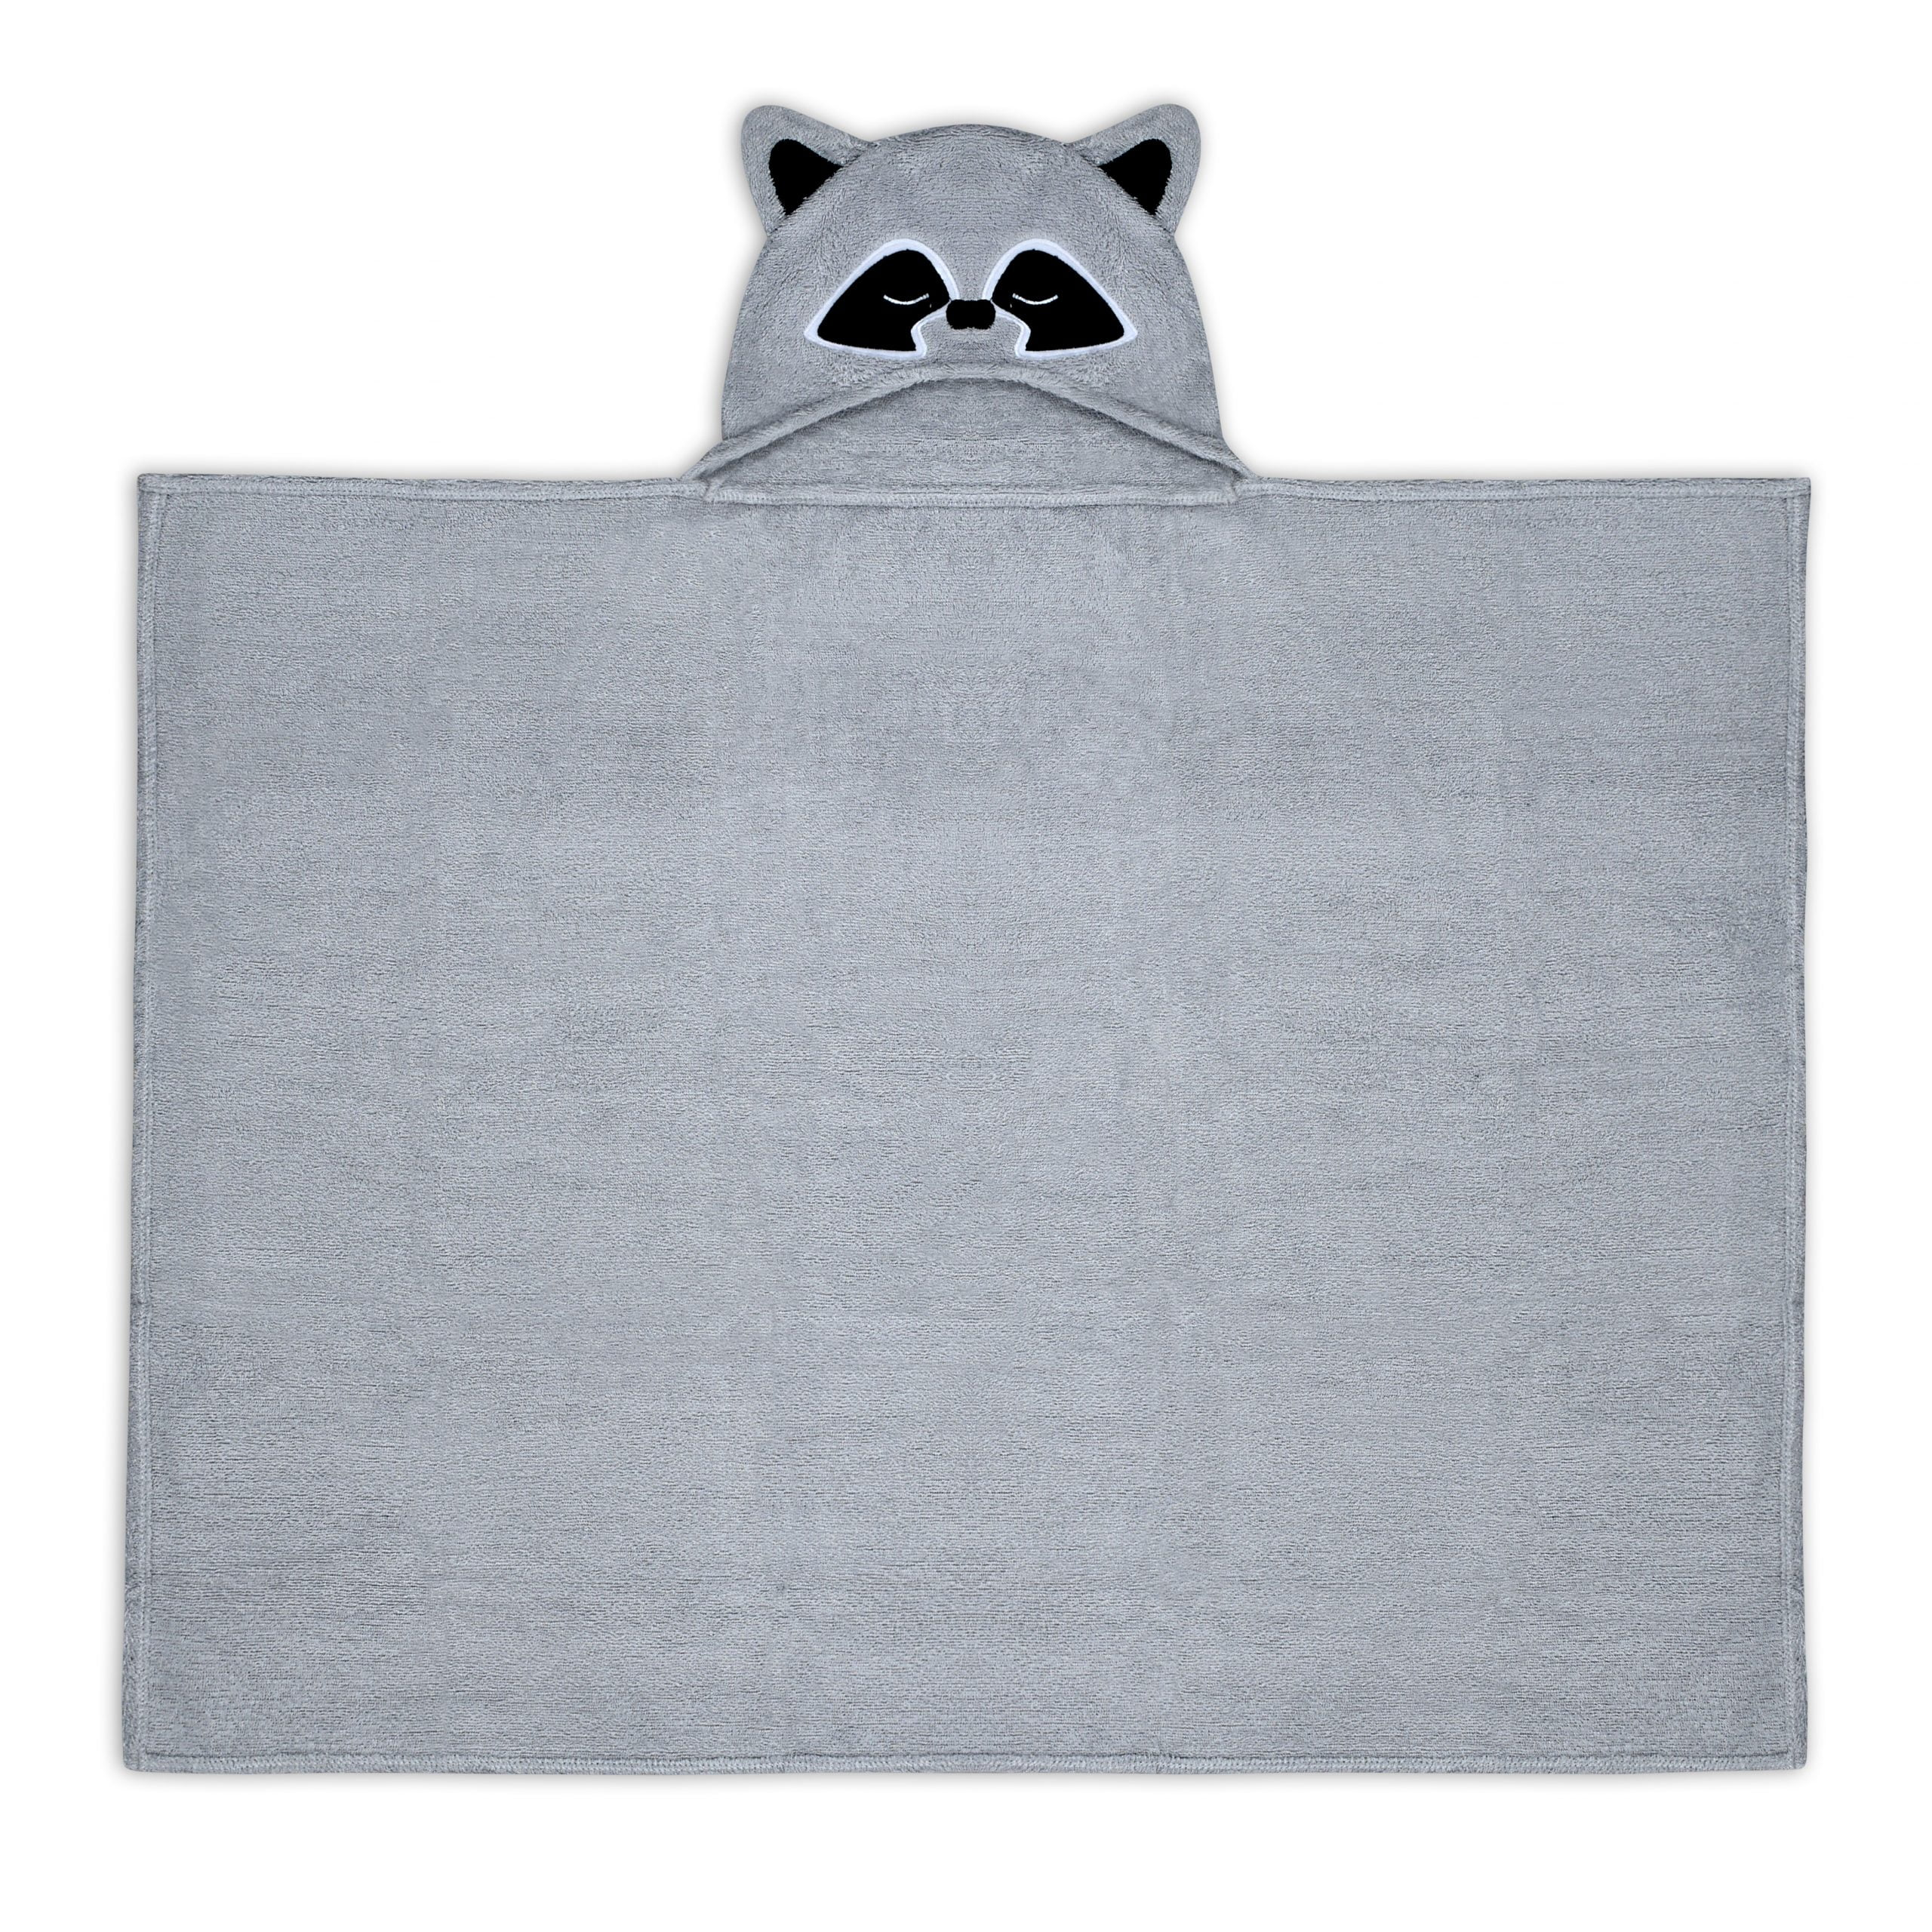 bath towel with raccoon hood flat lay on photography